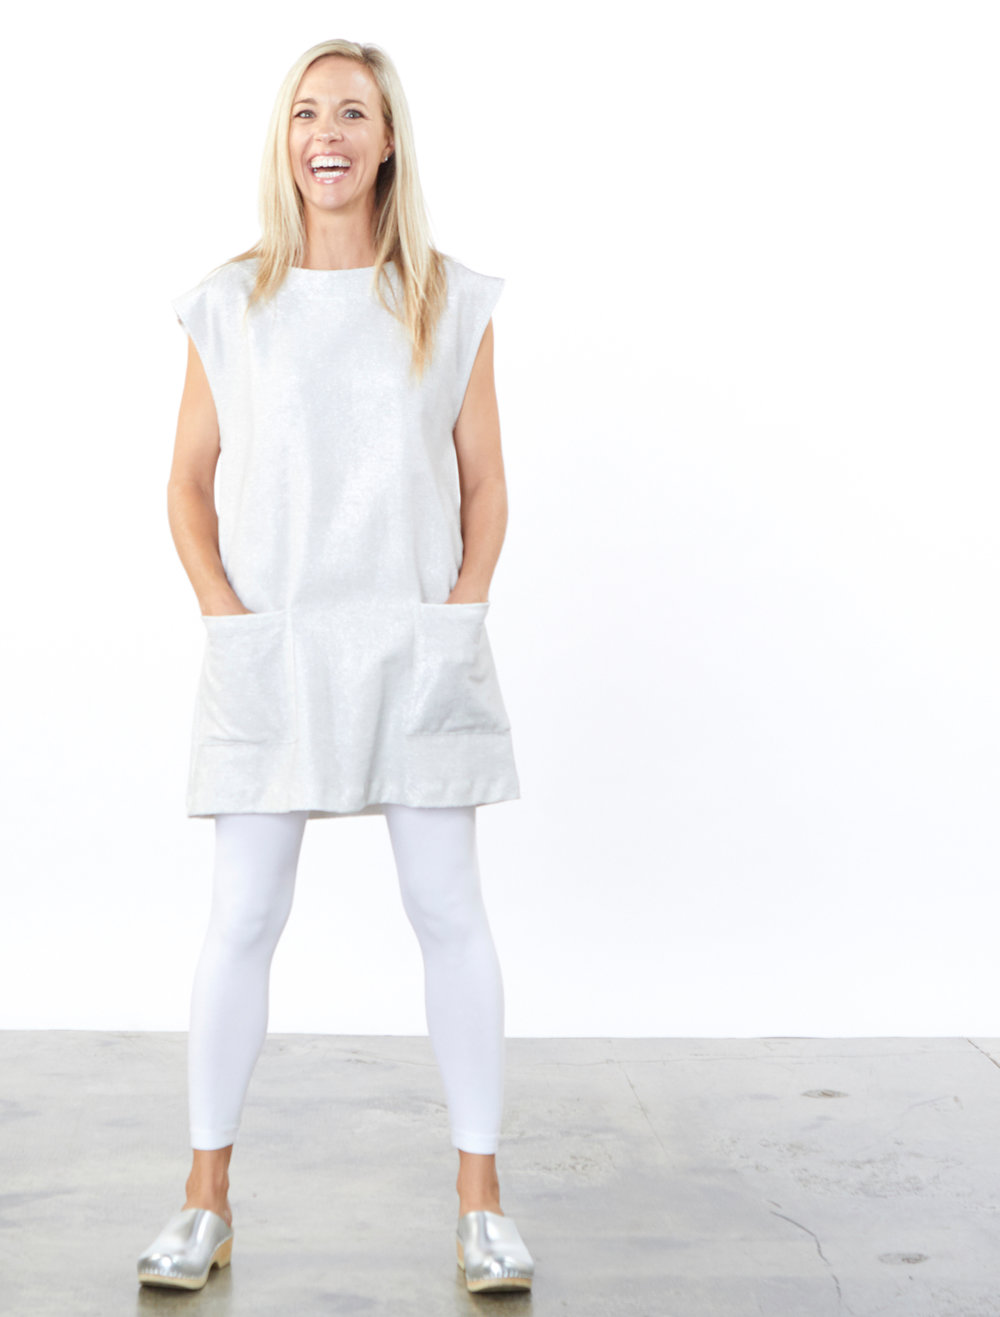 Clyde Tunic in Silver Ready for Newport Beach, Legging in White Bamboo Cotton